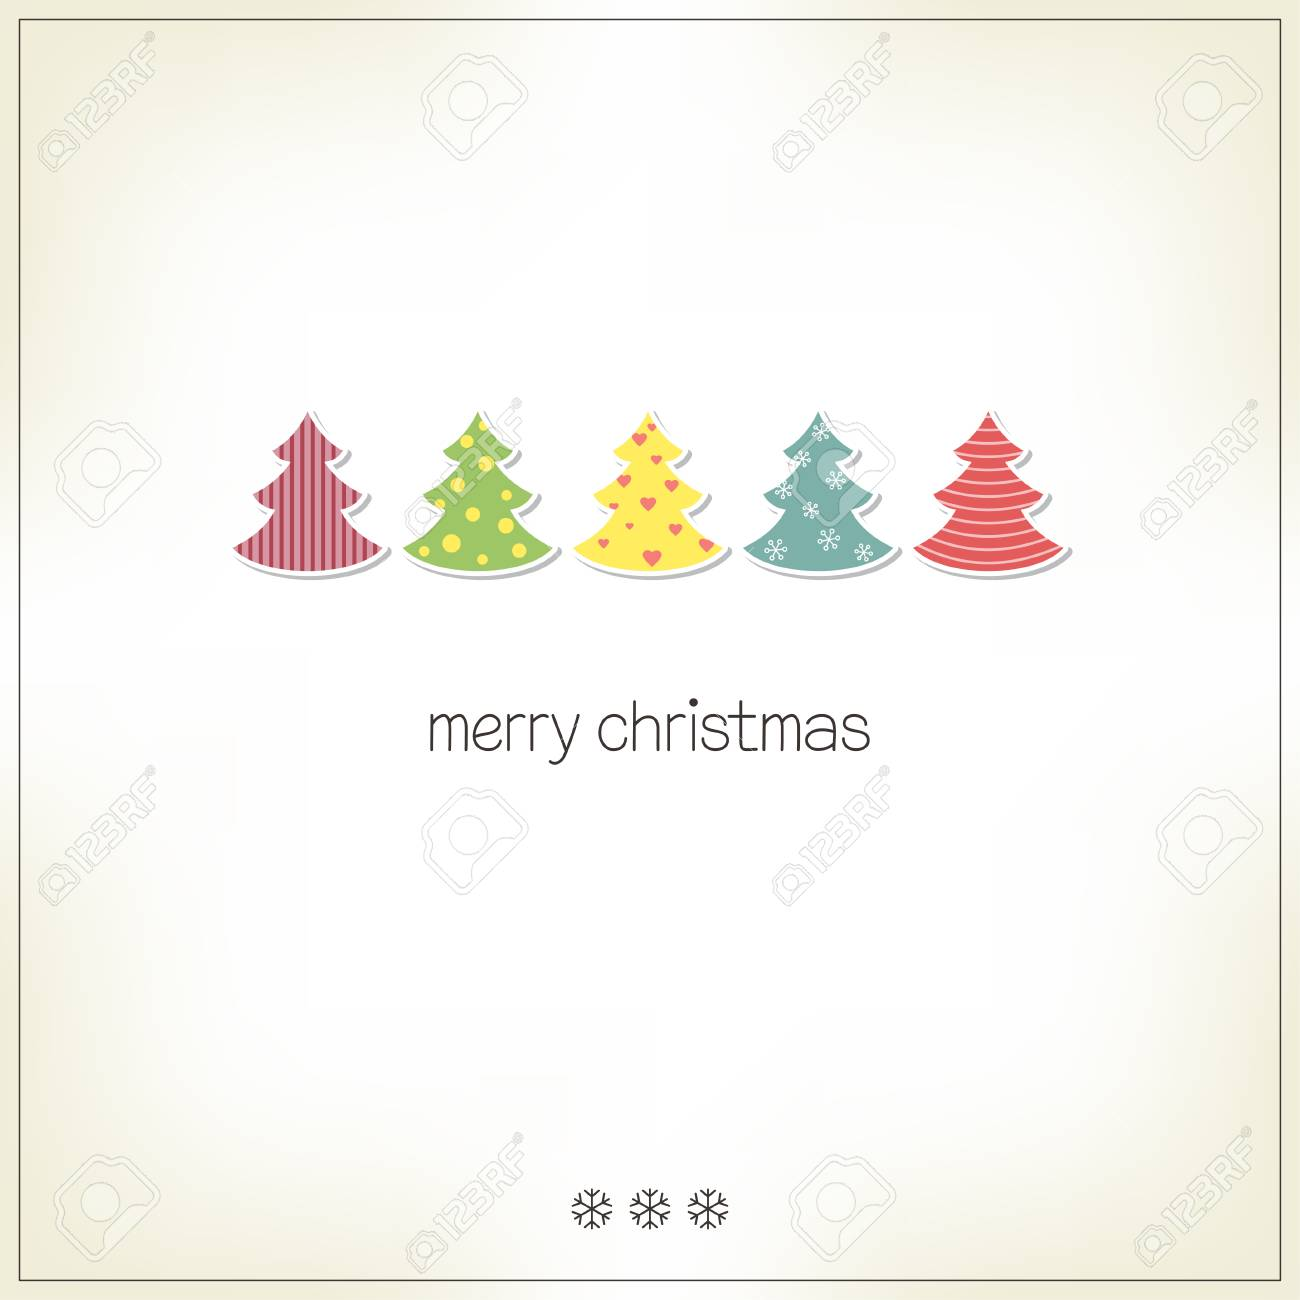 Christmas Tree Cutout.Greeting Card With Christmas Trees In Paper Cutout Style